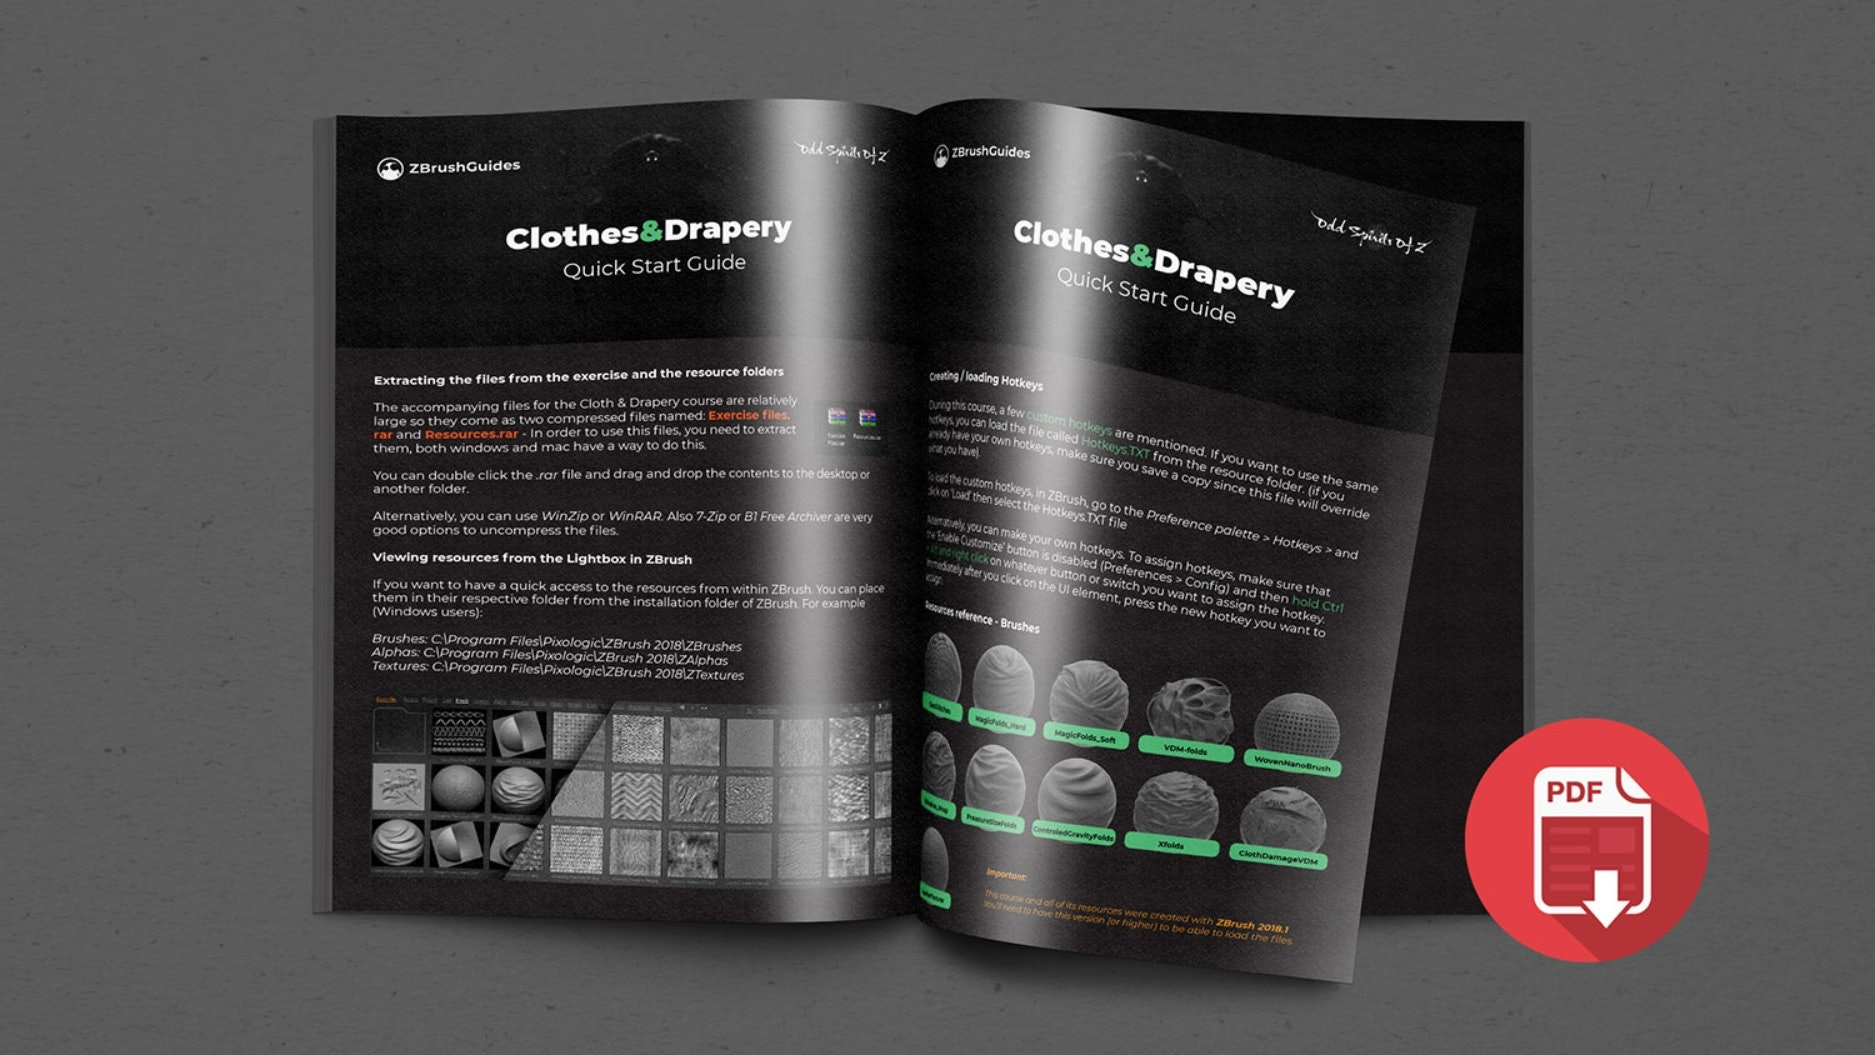 ZBrush Clothes and Drapery Course - Zbrush Guides